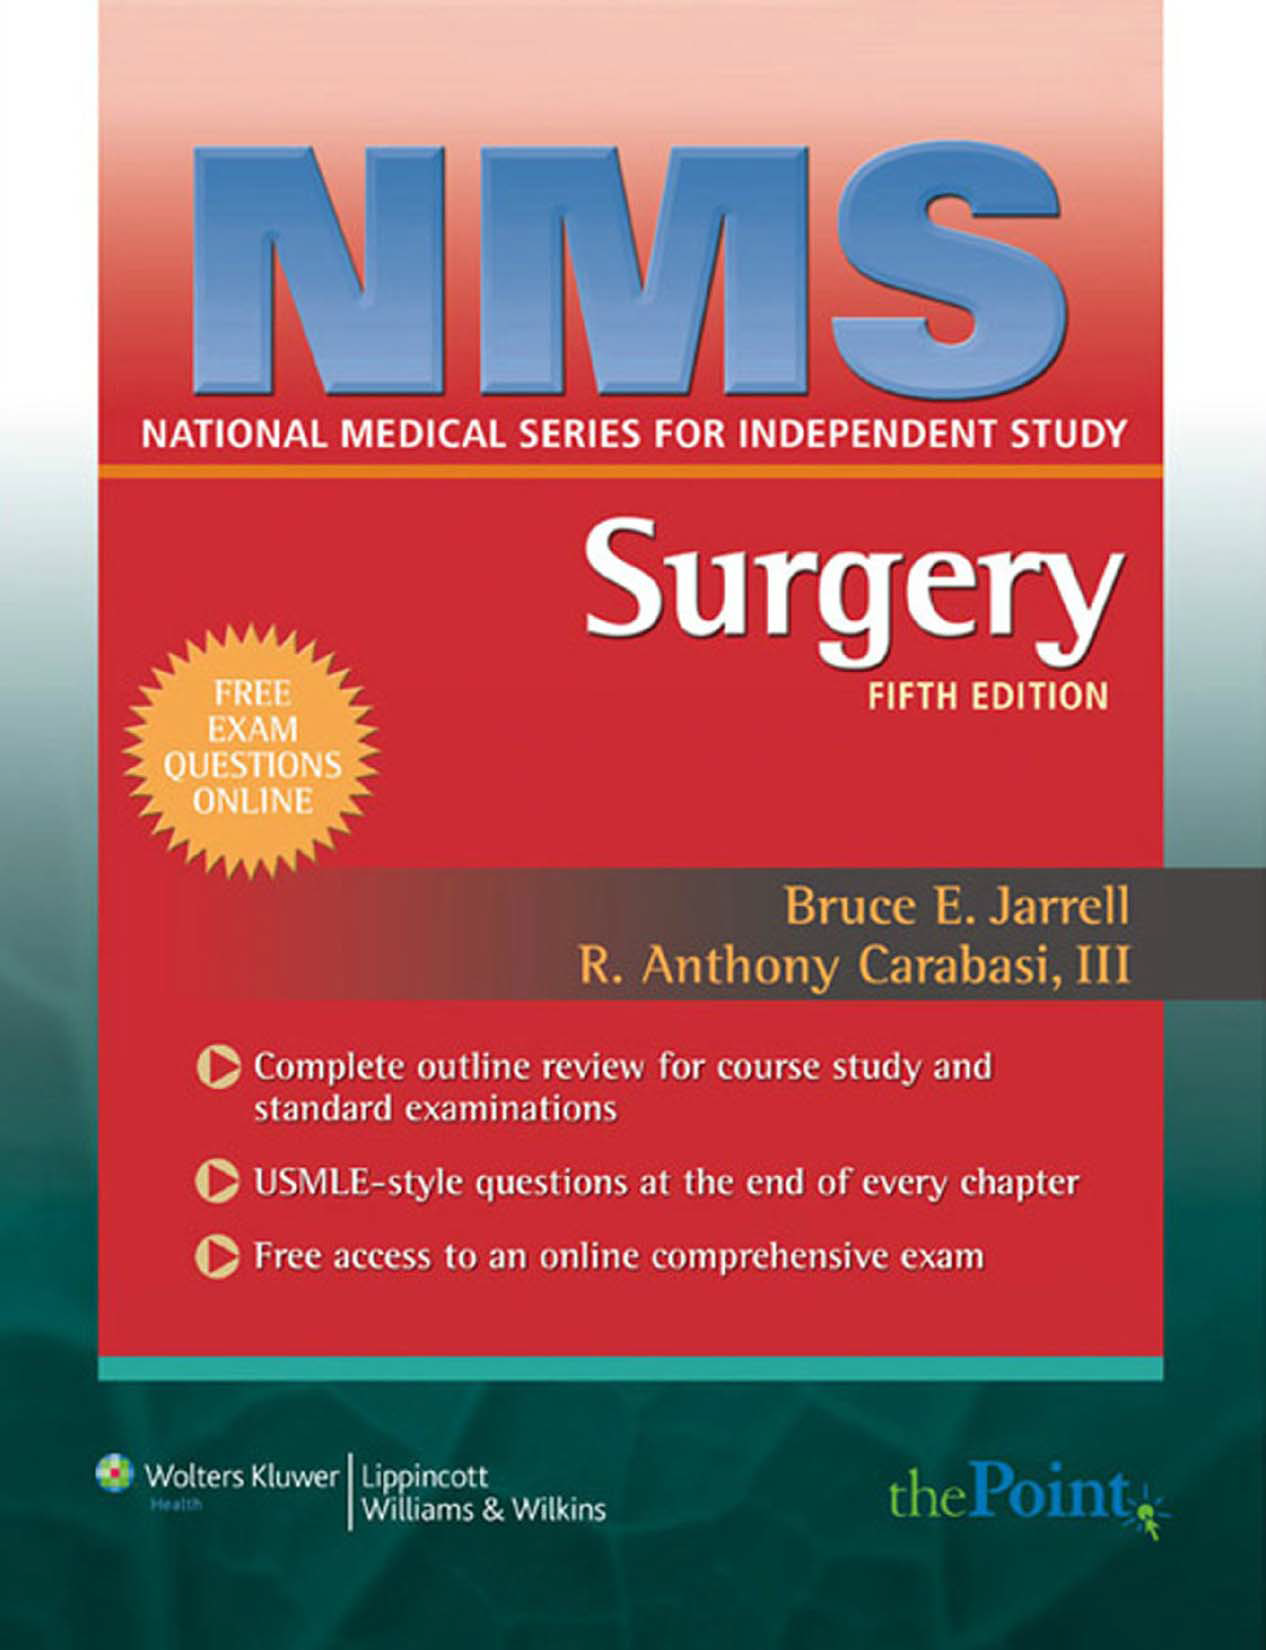 Medical Series, Medical Students, Bestseller Books, Books Online, Surgery,  Kindle,